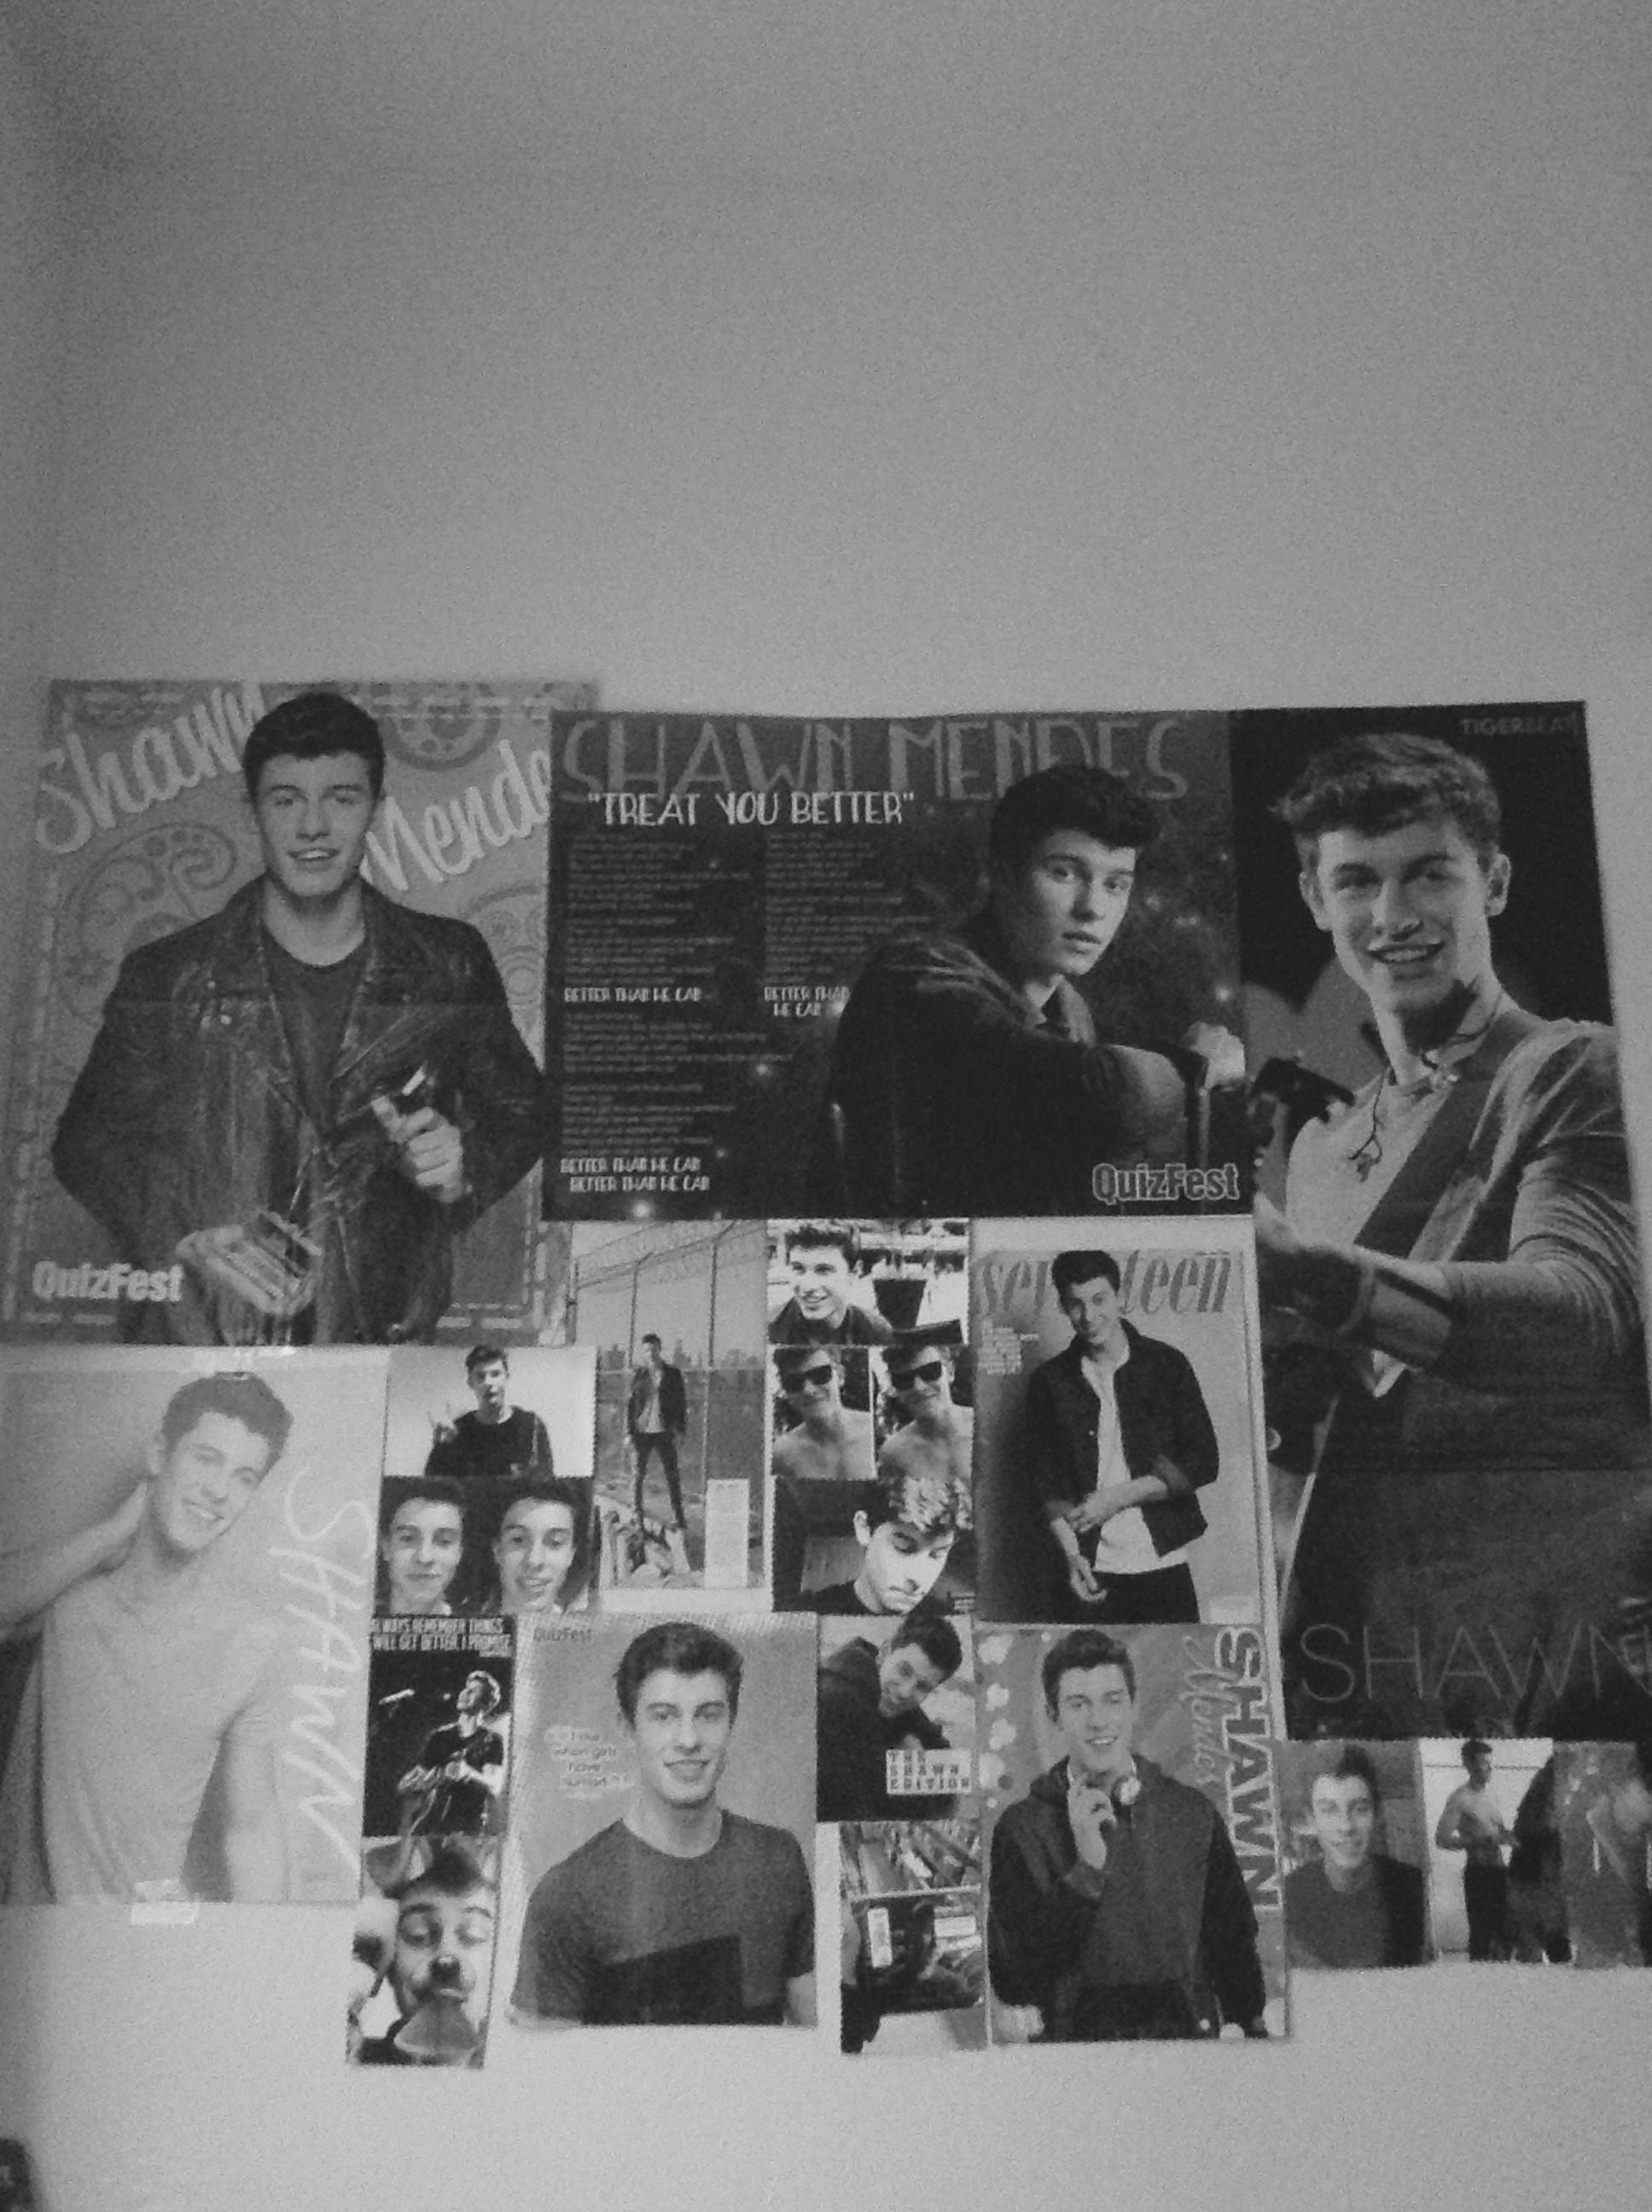 If You Guys Have A Shawn Wall Post A Pic Of It